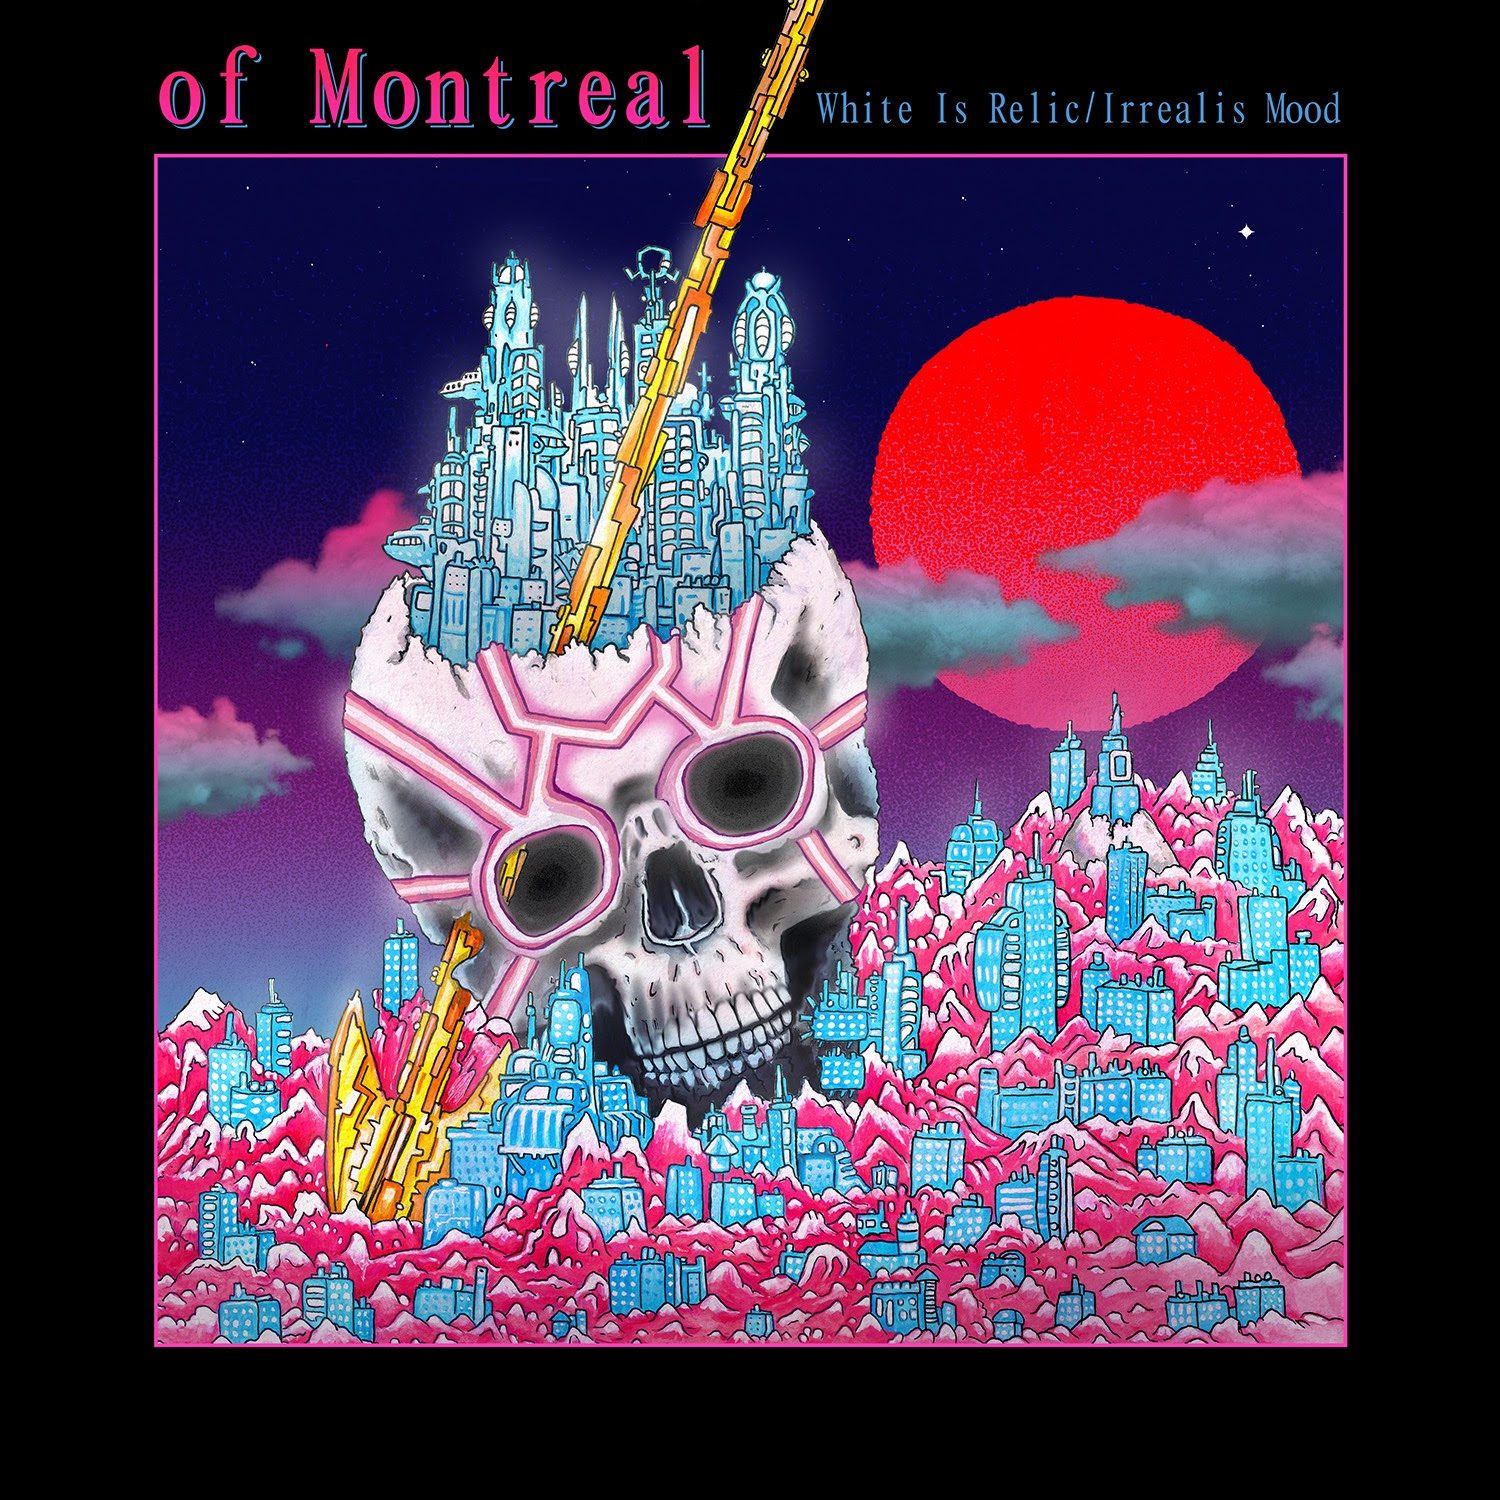 Of Montreal Album Cover